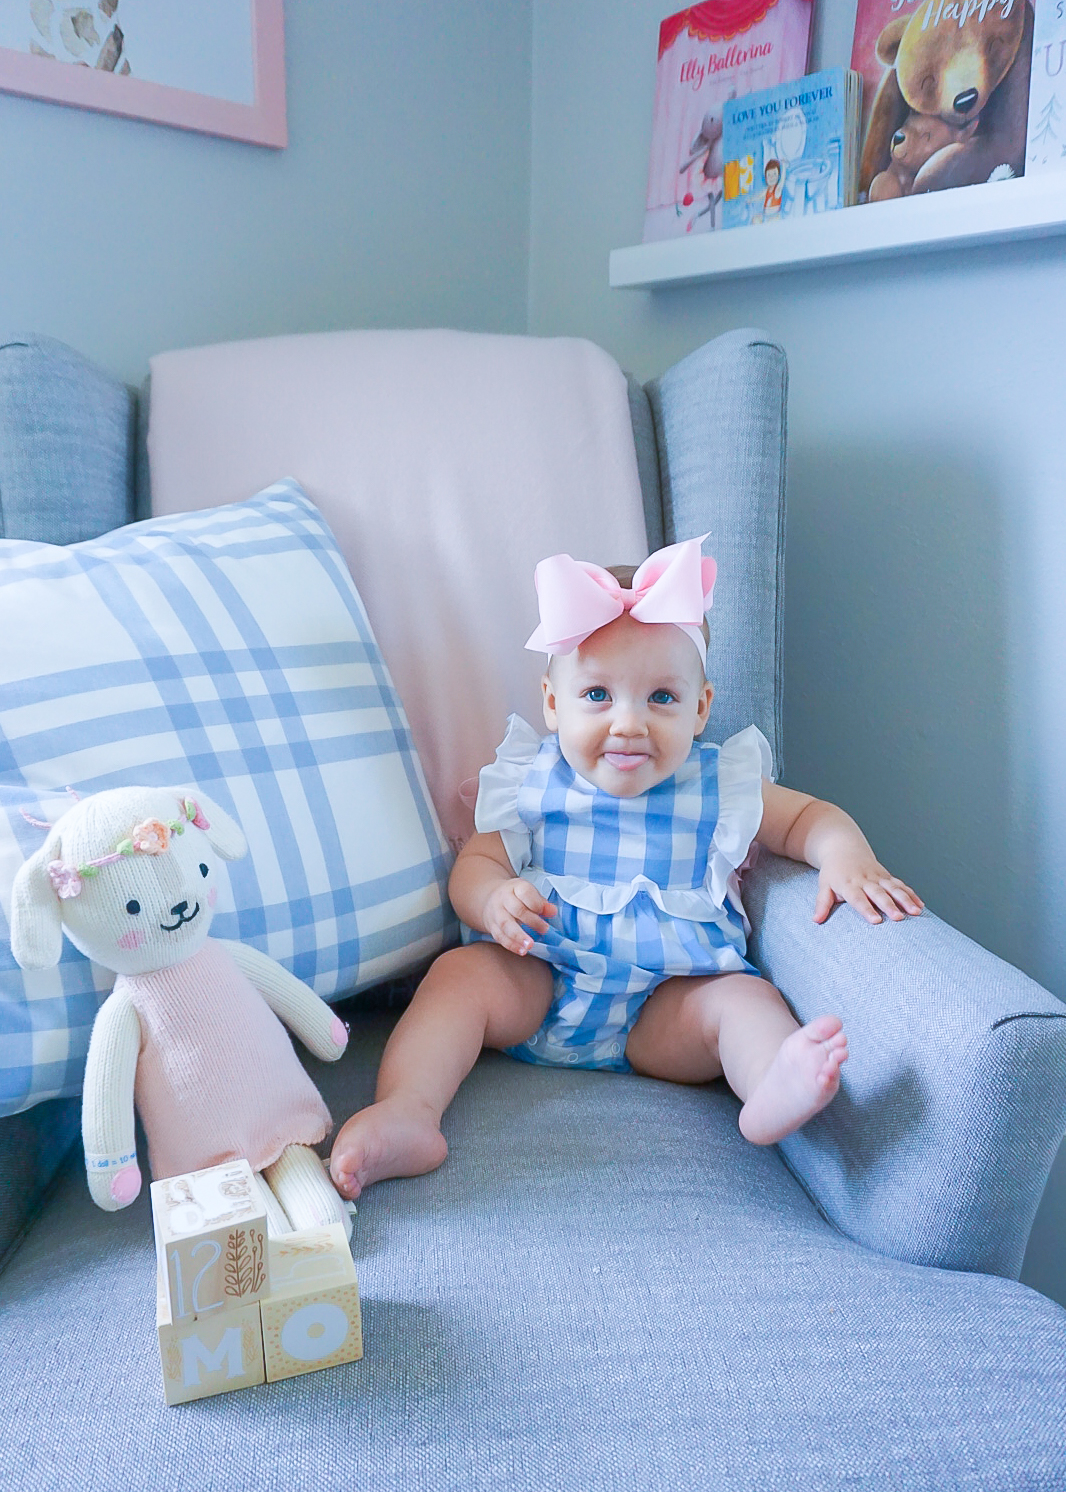 classic children's clothing 2020, classic baby nursery, pink and blue nursery, gingham baby clothing